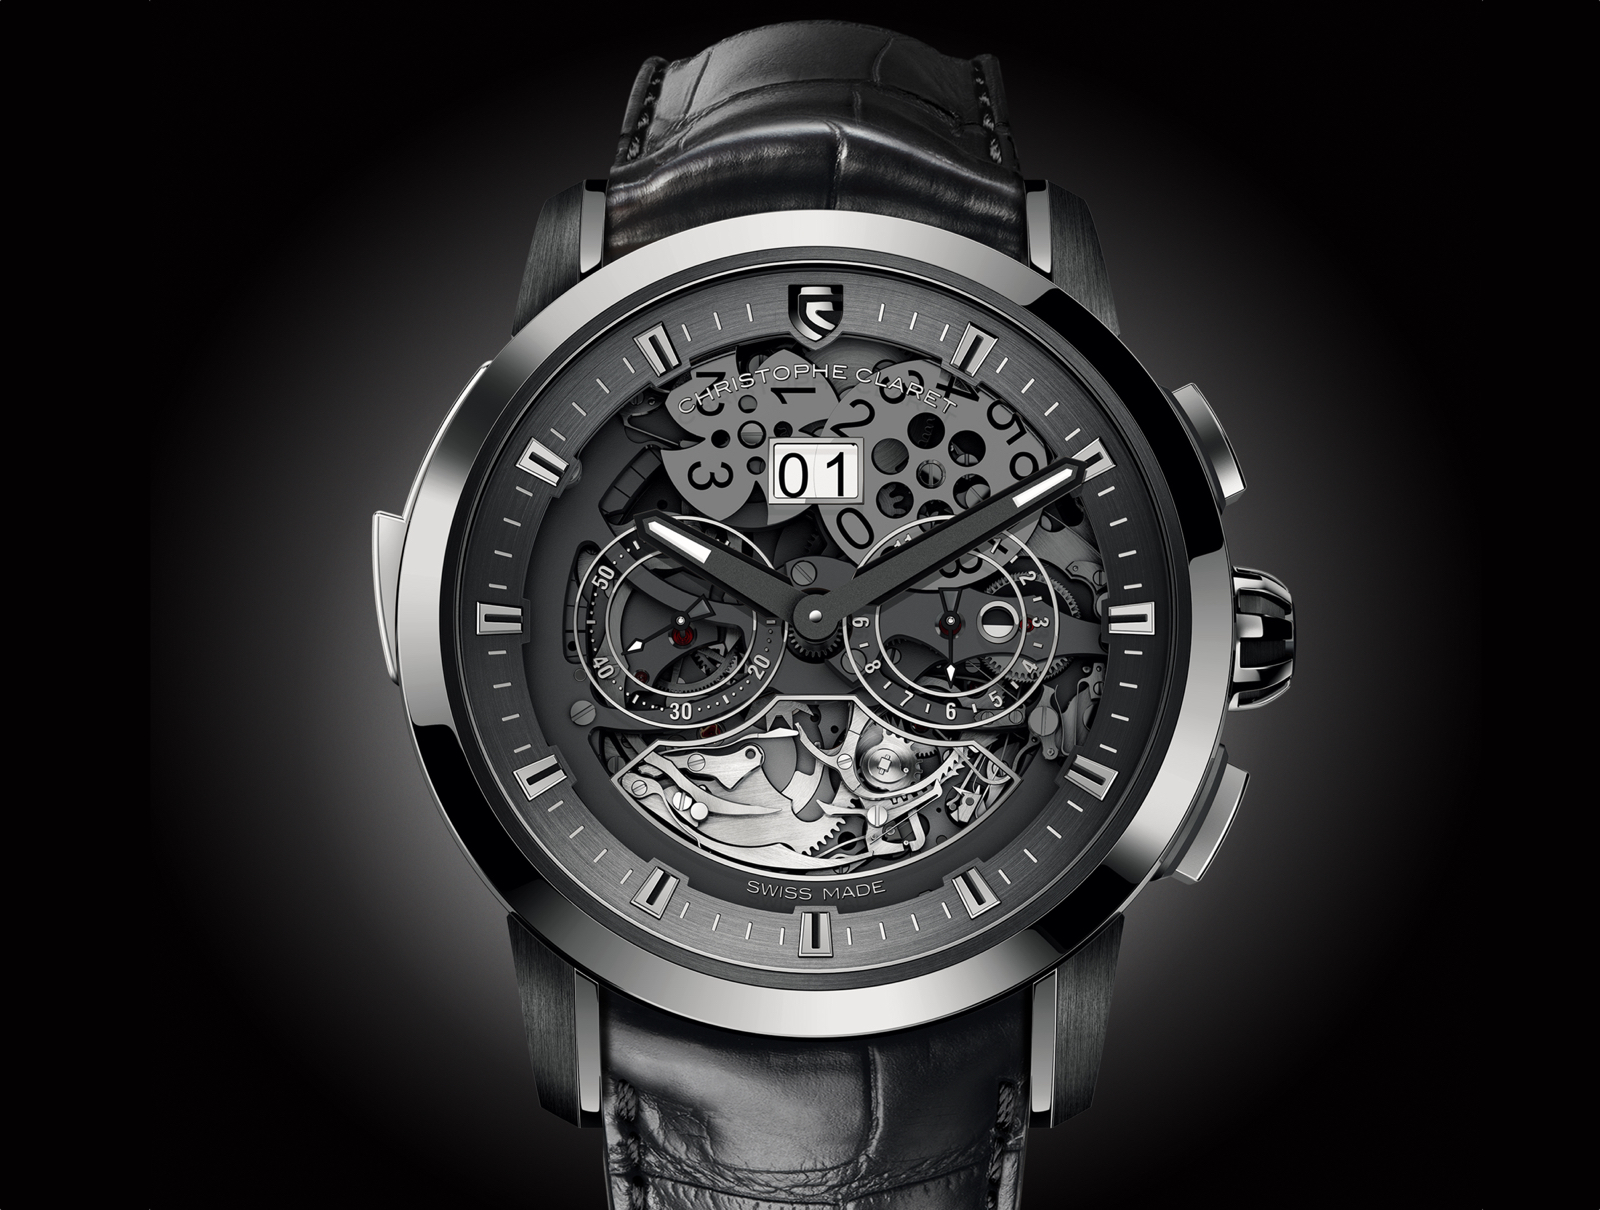 Allegro Christophe Claret white gold 2